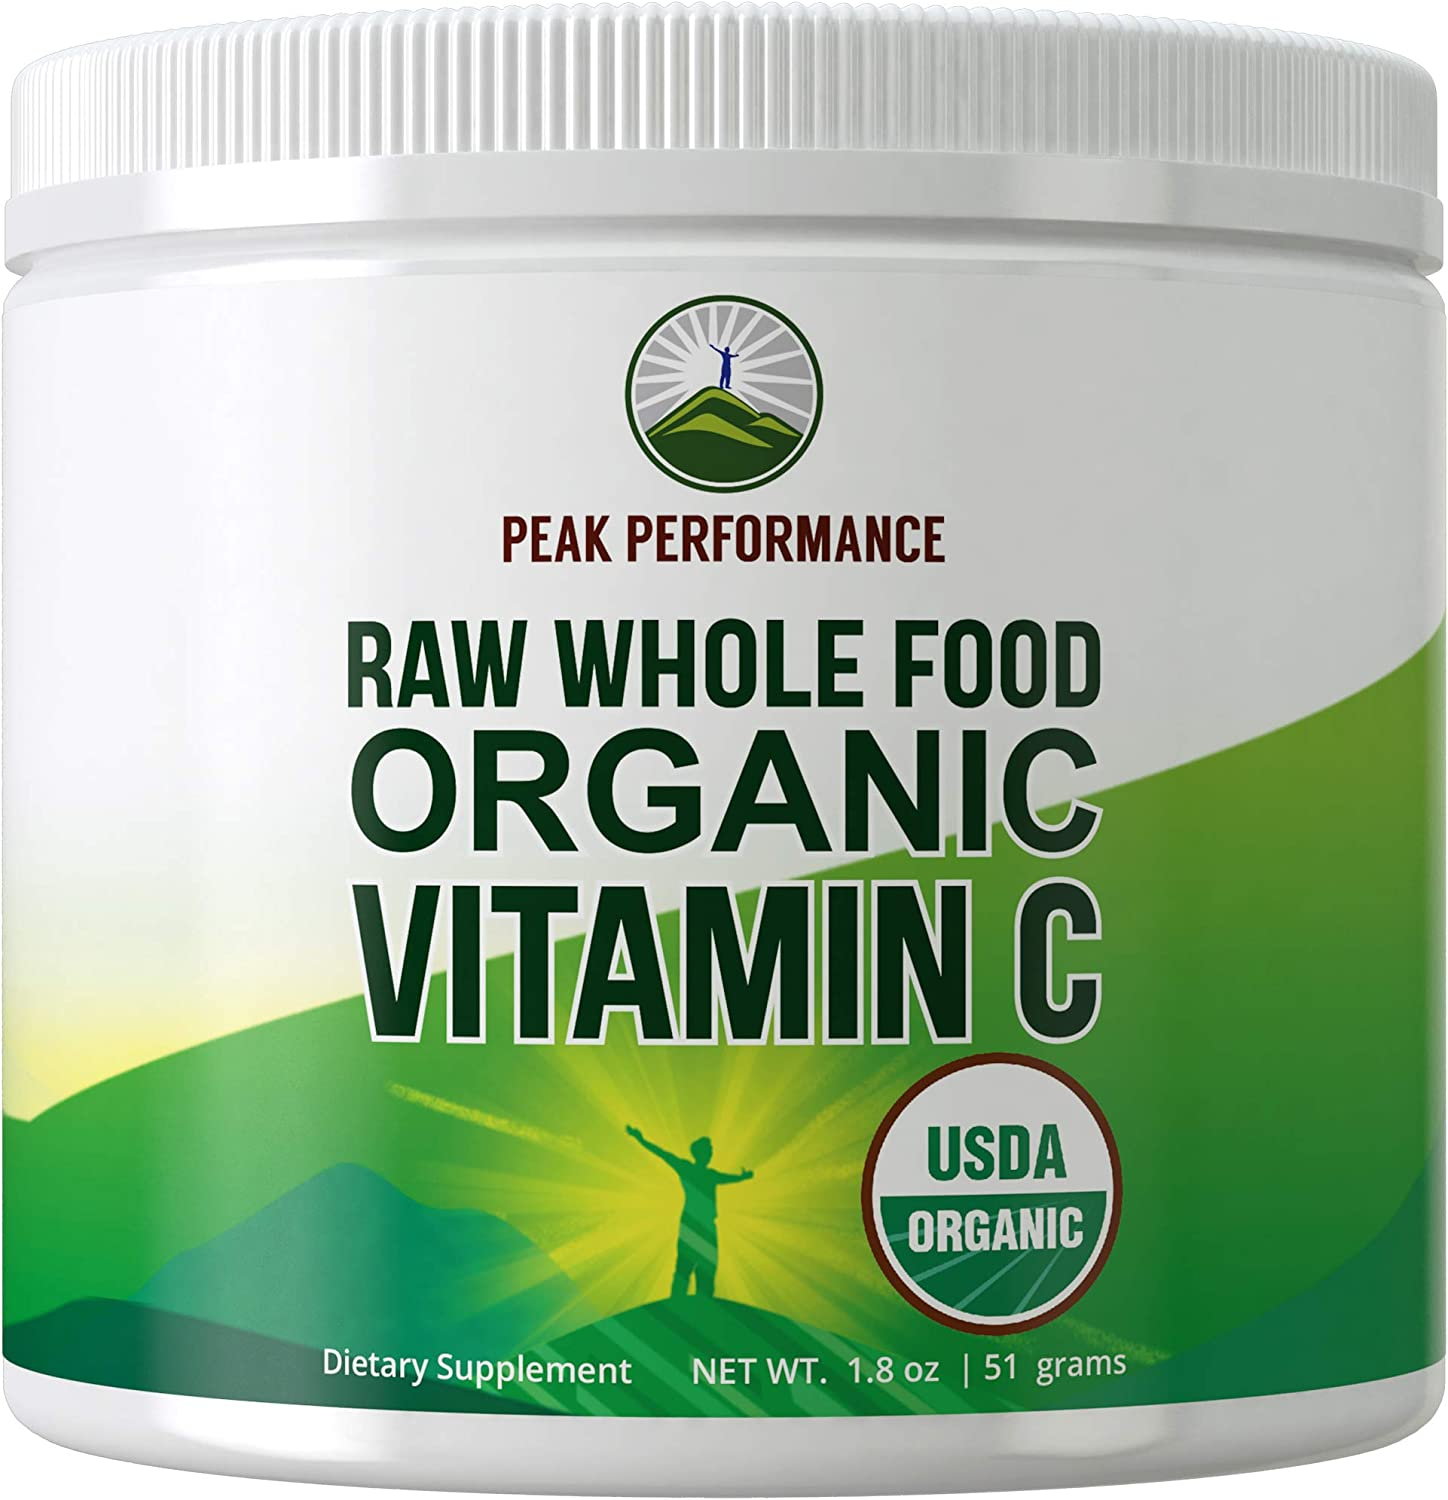 Organic Vitamin C Powder from Raw Whole Food Organic Acerola Cherry. Organic Vegan Supplement for Immune Support. Max Absorption, No Artificial Sweeteners